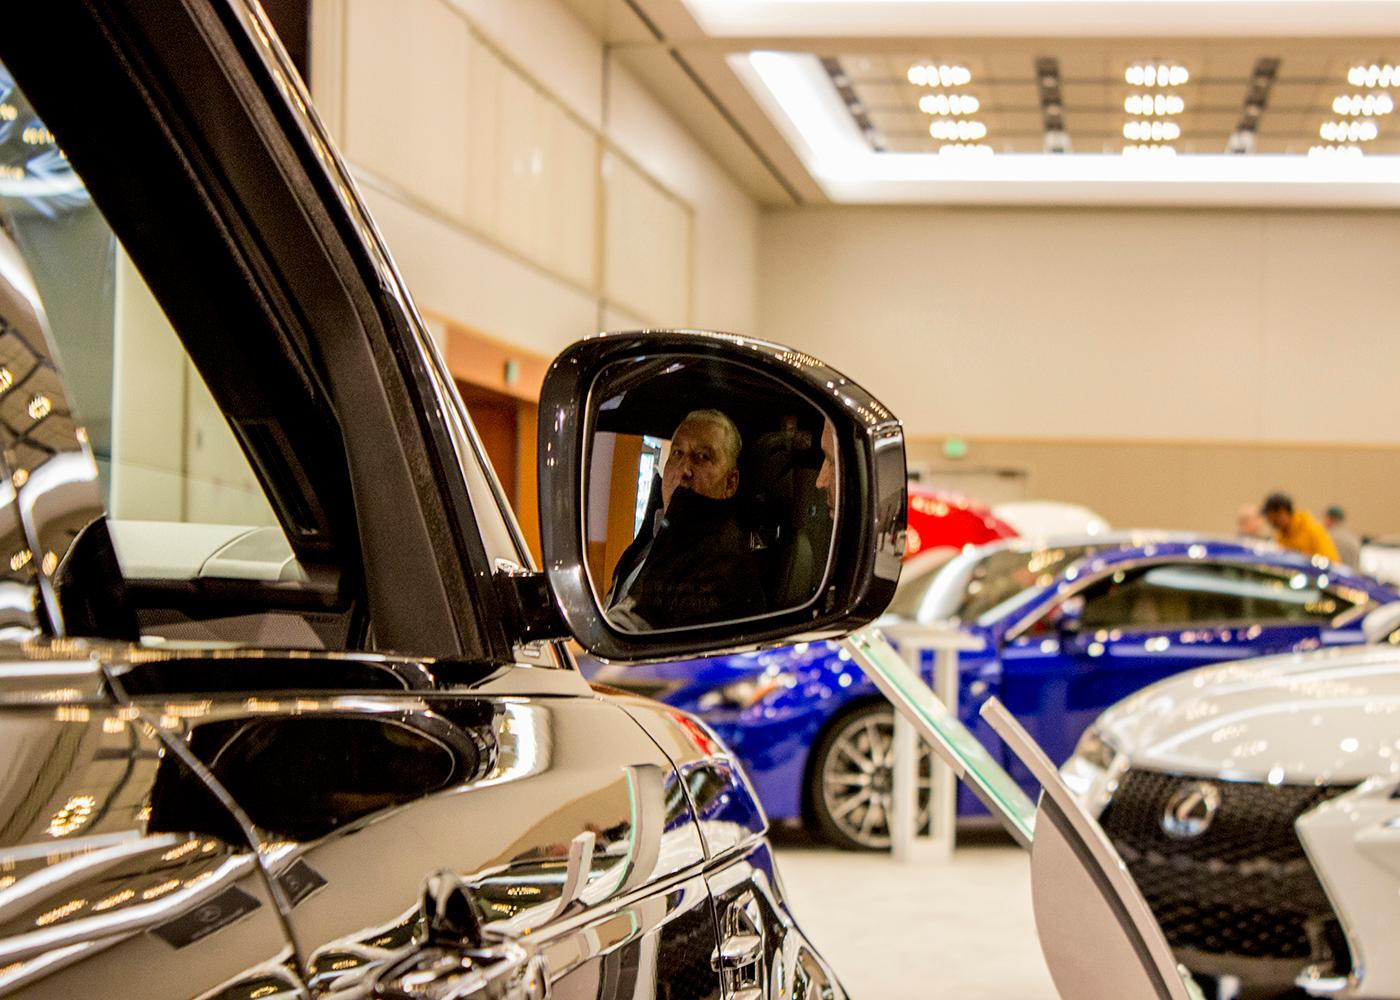 The Portland International Auto Show began at the Oregon Convention Center on Jan. 25, 2018. The event drew prospective buyers and others who enjoyed looking at and comparing vehicles. Photo by Amanda Butt